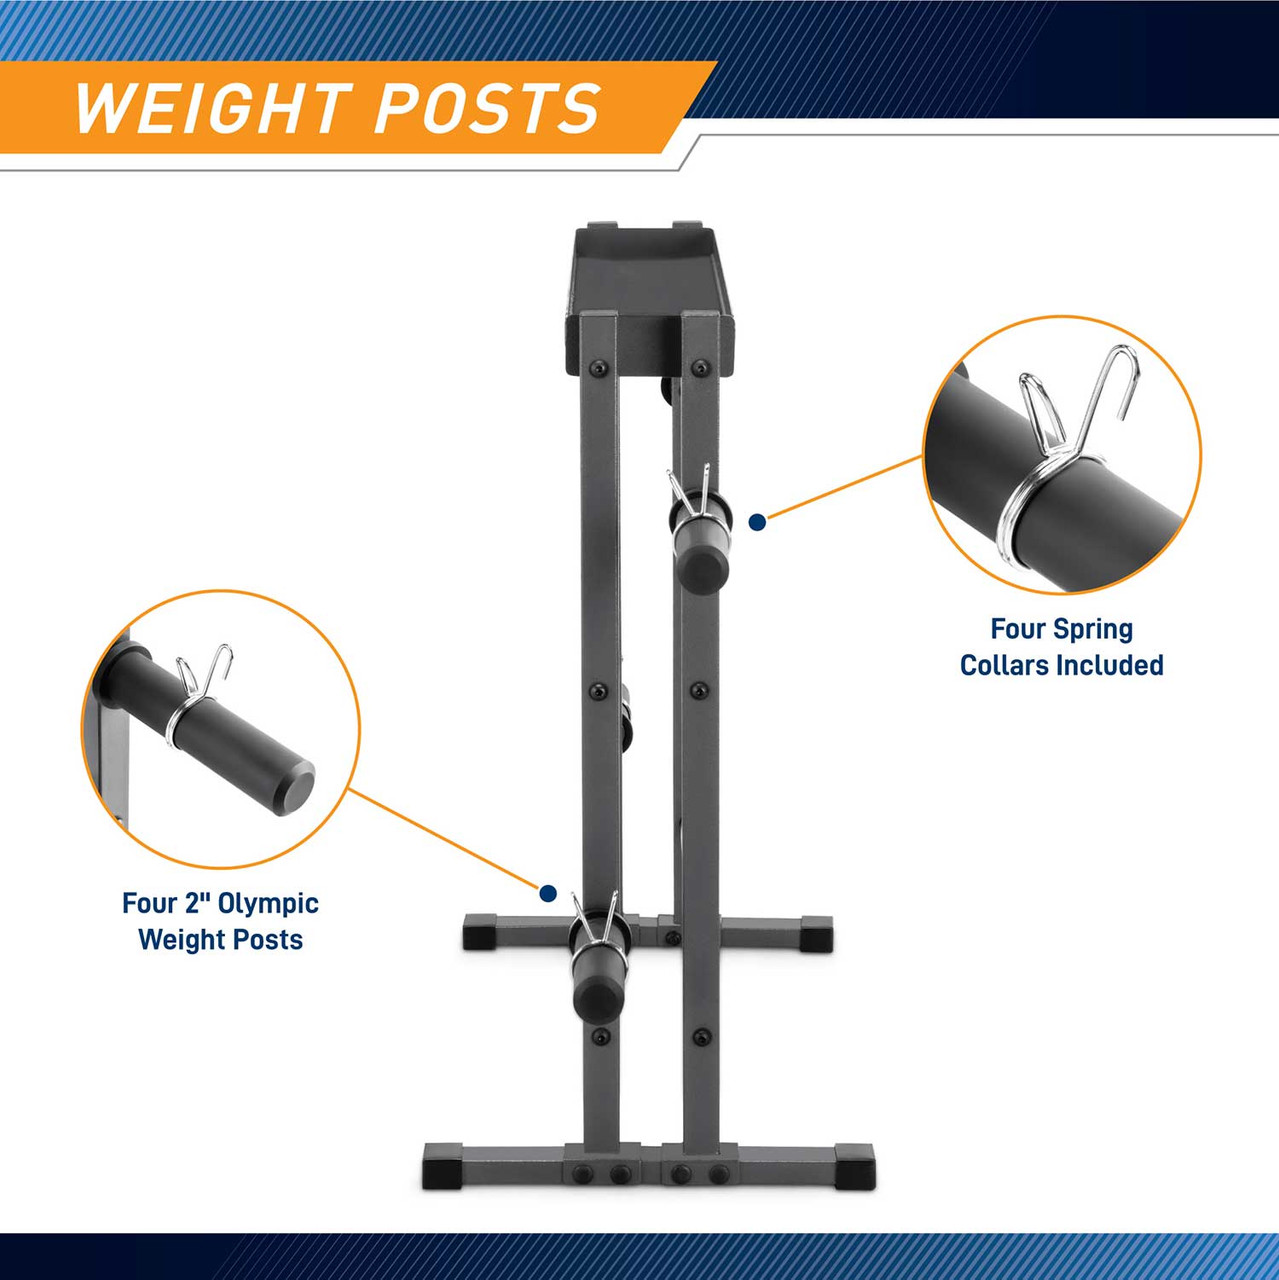 Store your fitness accessories on this multifactional rack with uniquely constructed 3-layer rack and 4 storage posts that allows for dumbbell set, weight set, and other weightlifting tools all in one place.